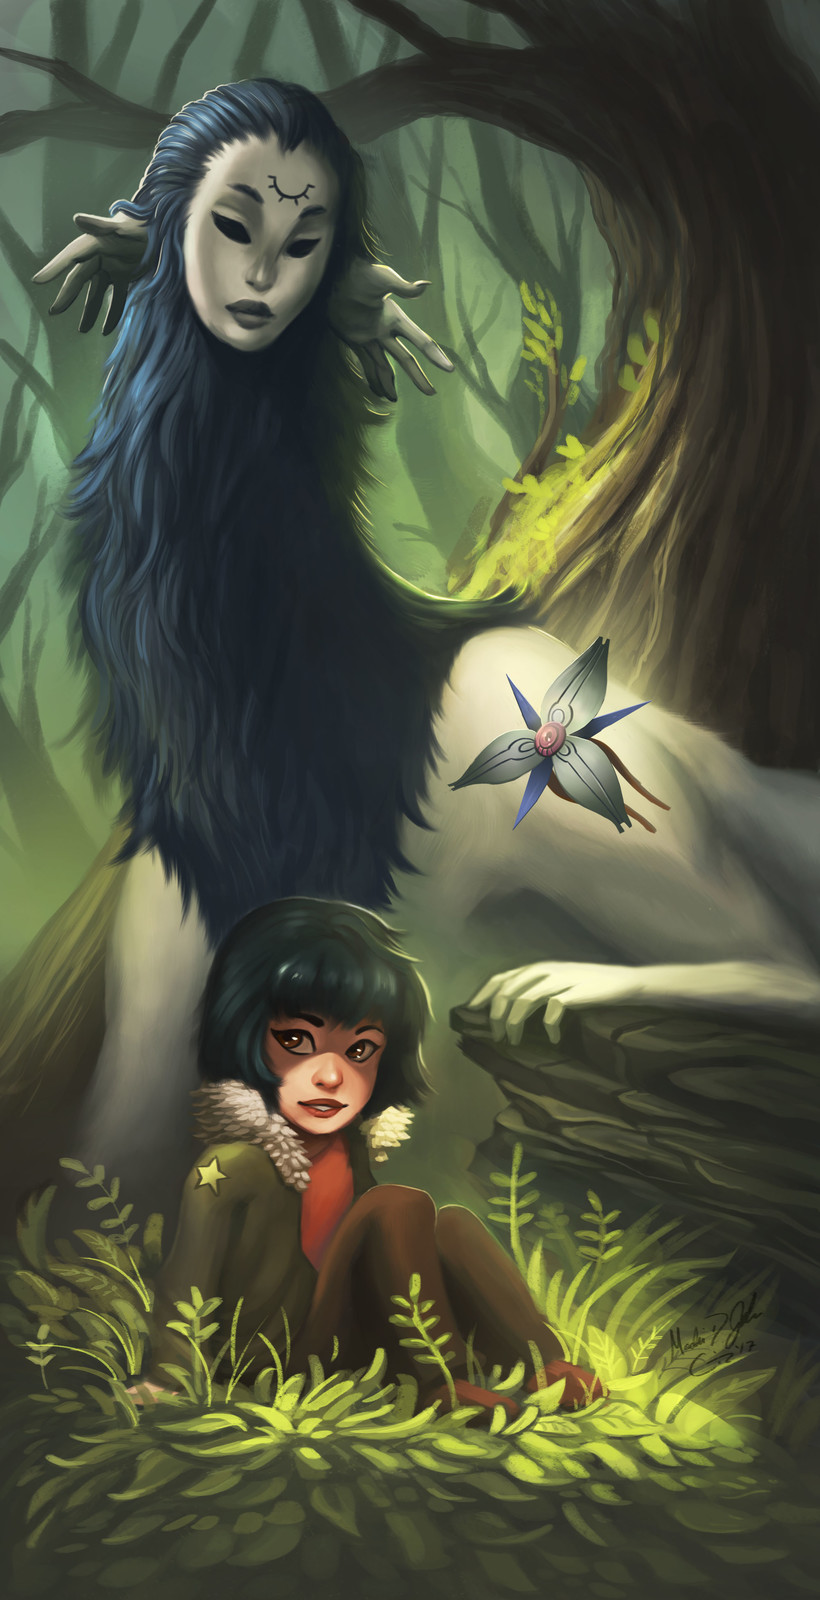 Keeper and the Soldier - Bookmark Illustration